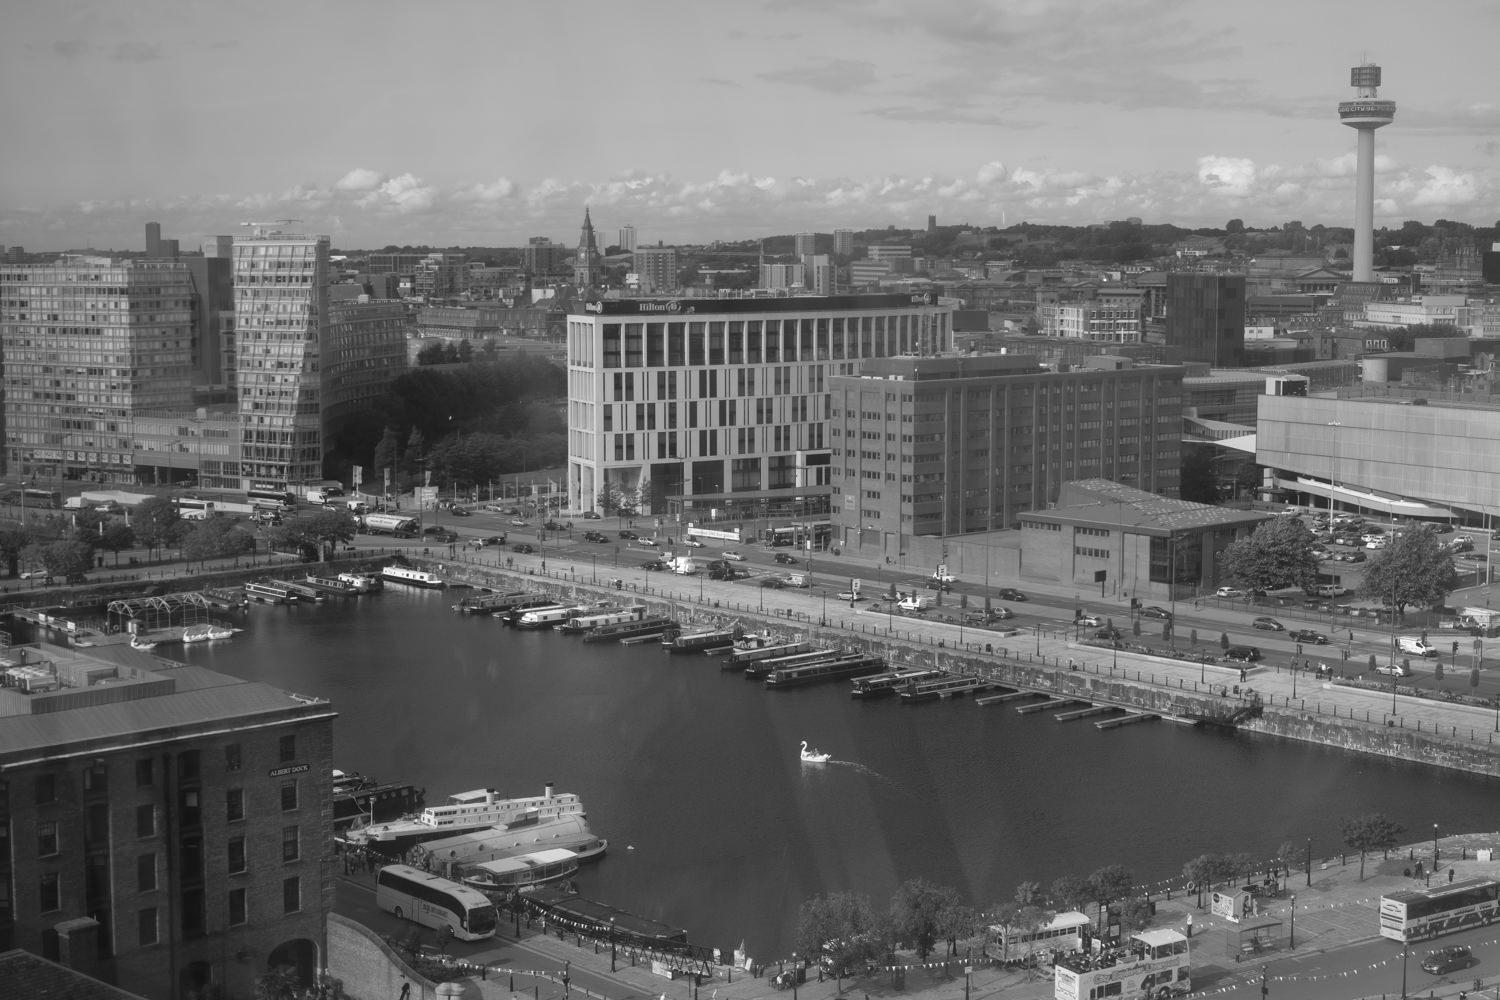 Looking across buildings from high up in the air. In the foreground is a rectangular piece of water - part of the Albert Docks - with boats moored around the edges and a swan-shaped pedalo in the centre.